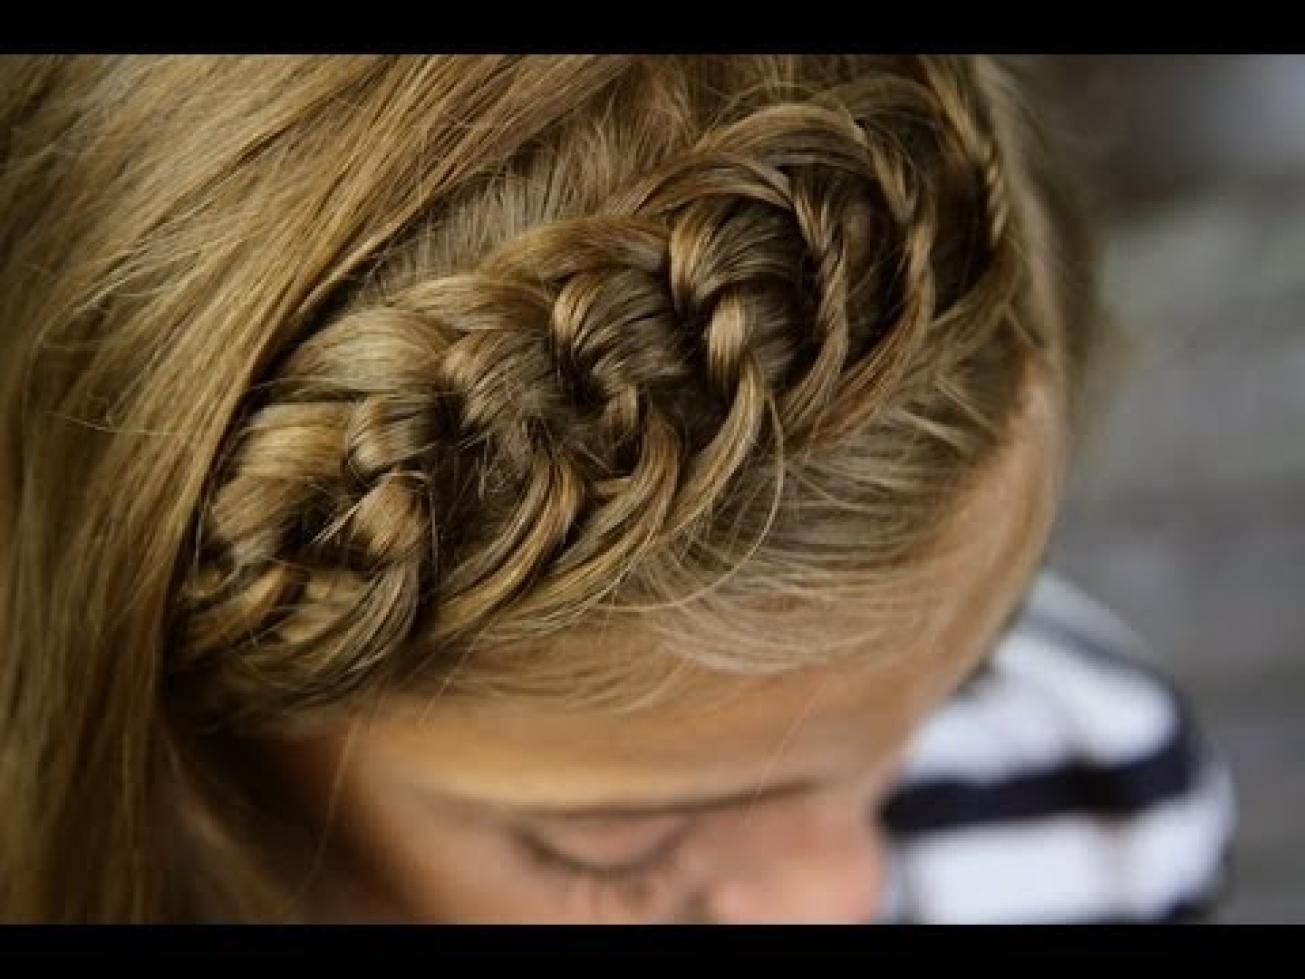 youtube braid master | the knotted headband | bangs or